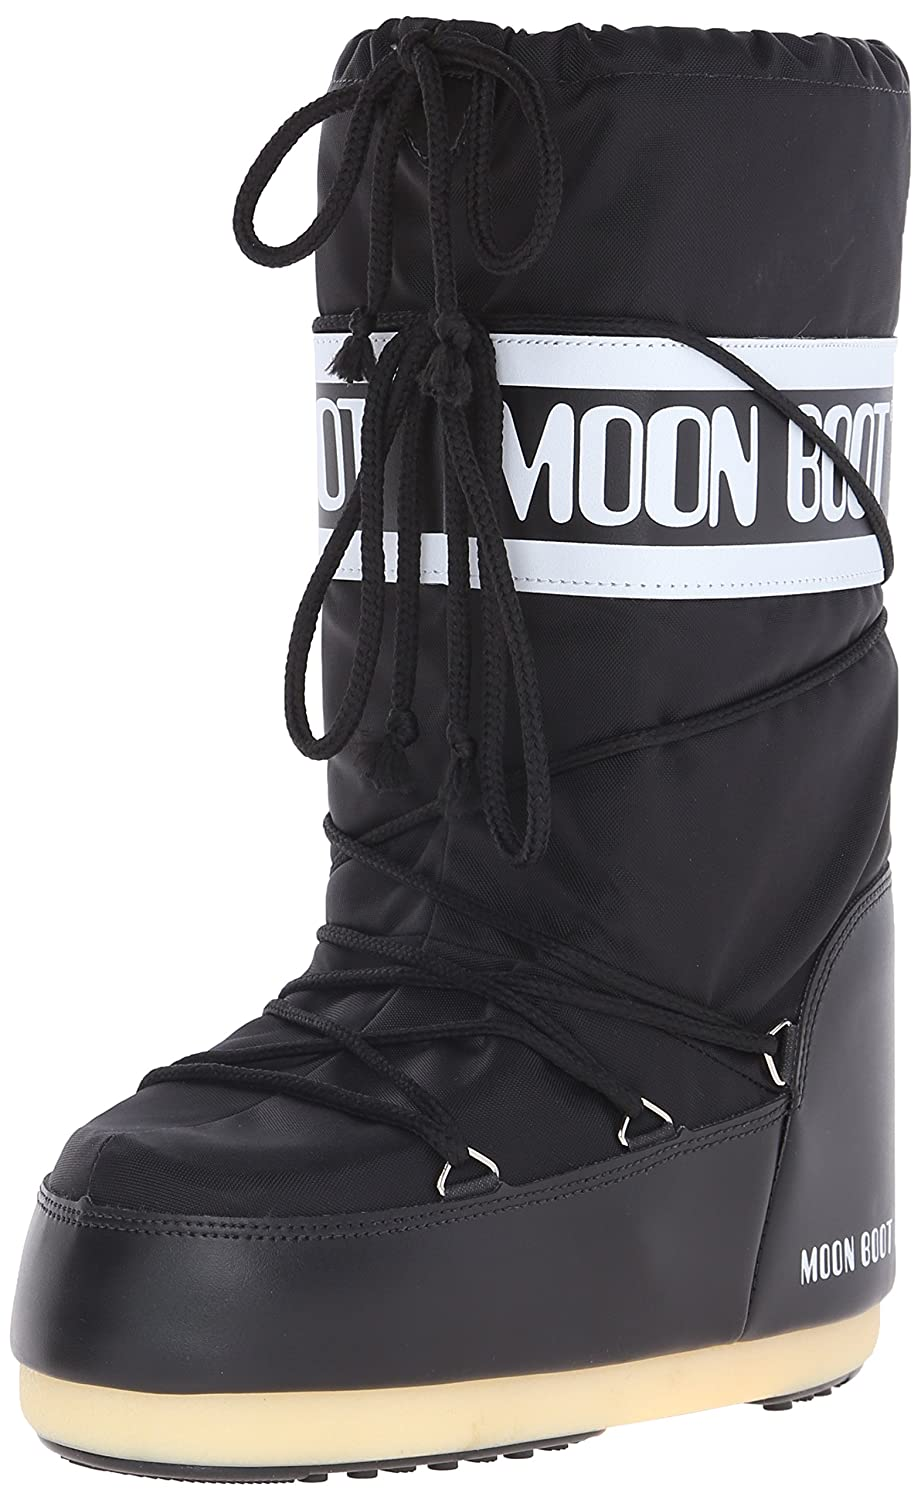 Tecnica Unisex Moon Nylon Fashion Boot B000CR2450 39-41 EU (7-8.5 M US Women's)|Black